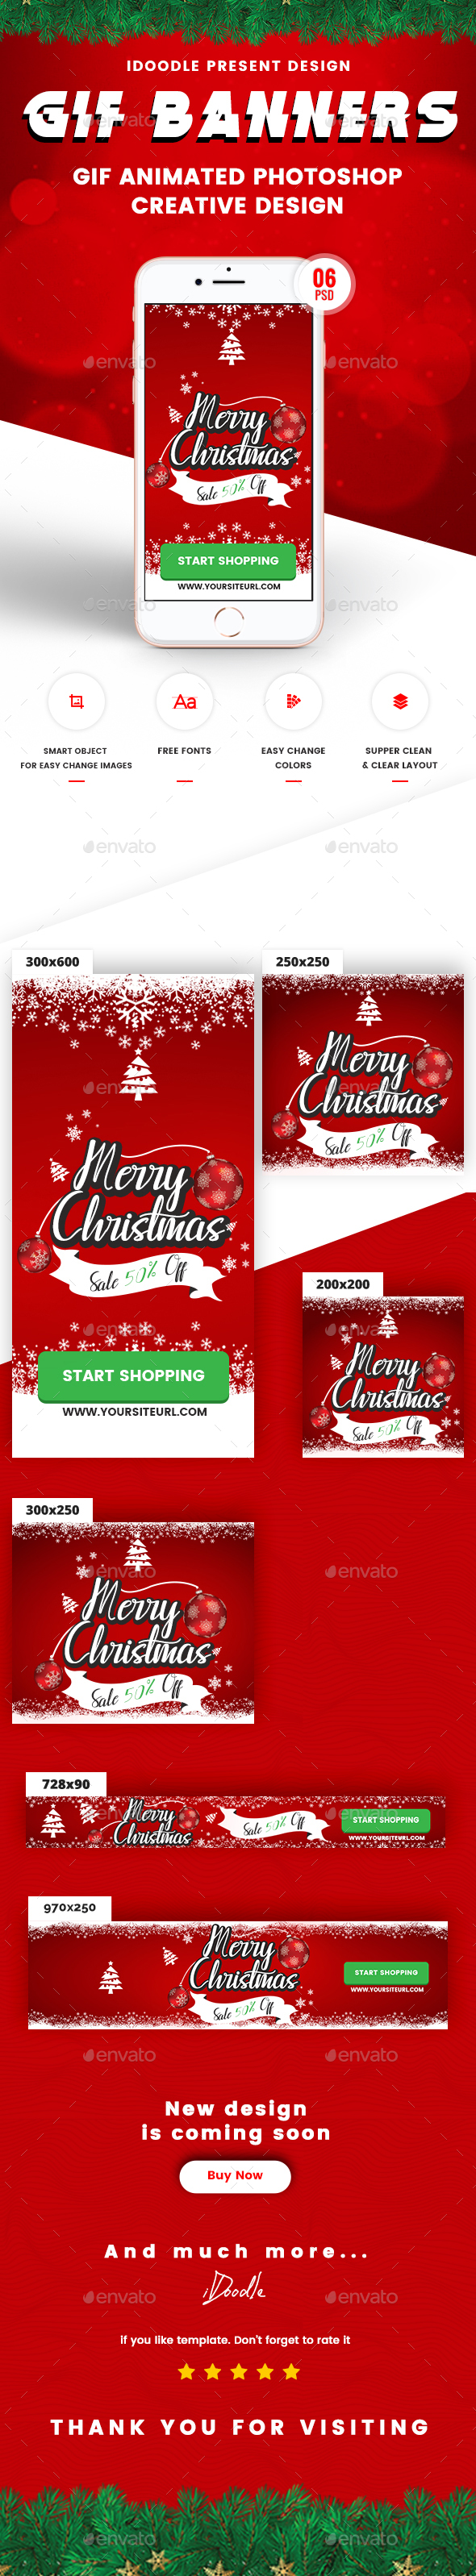 GraphicRiver Animated GIF Merry Christmas Banners Ad 21122762